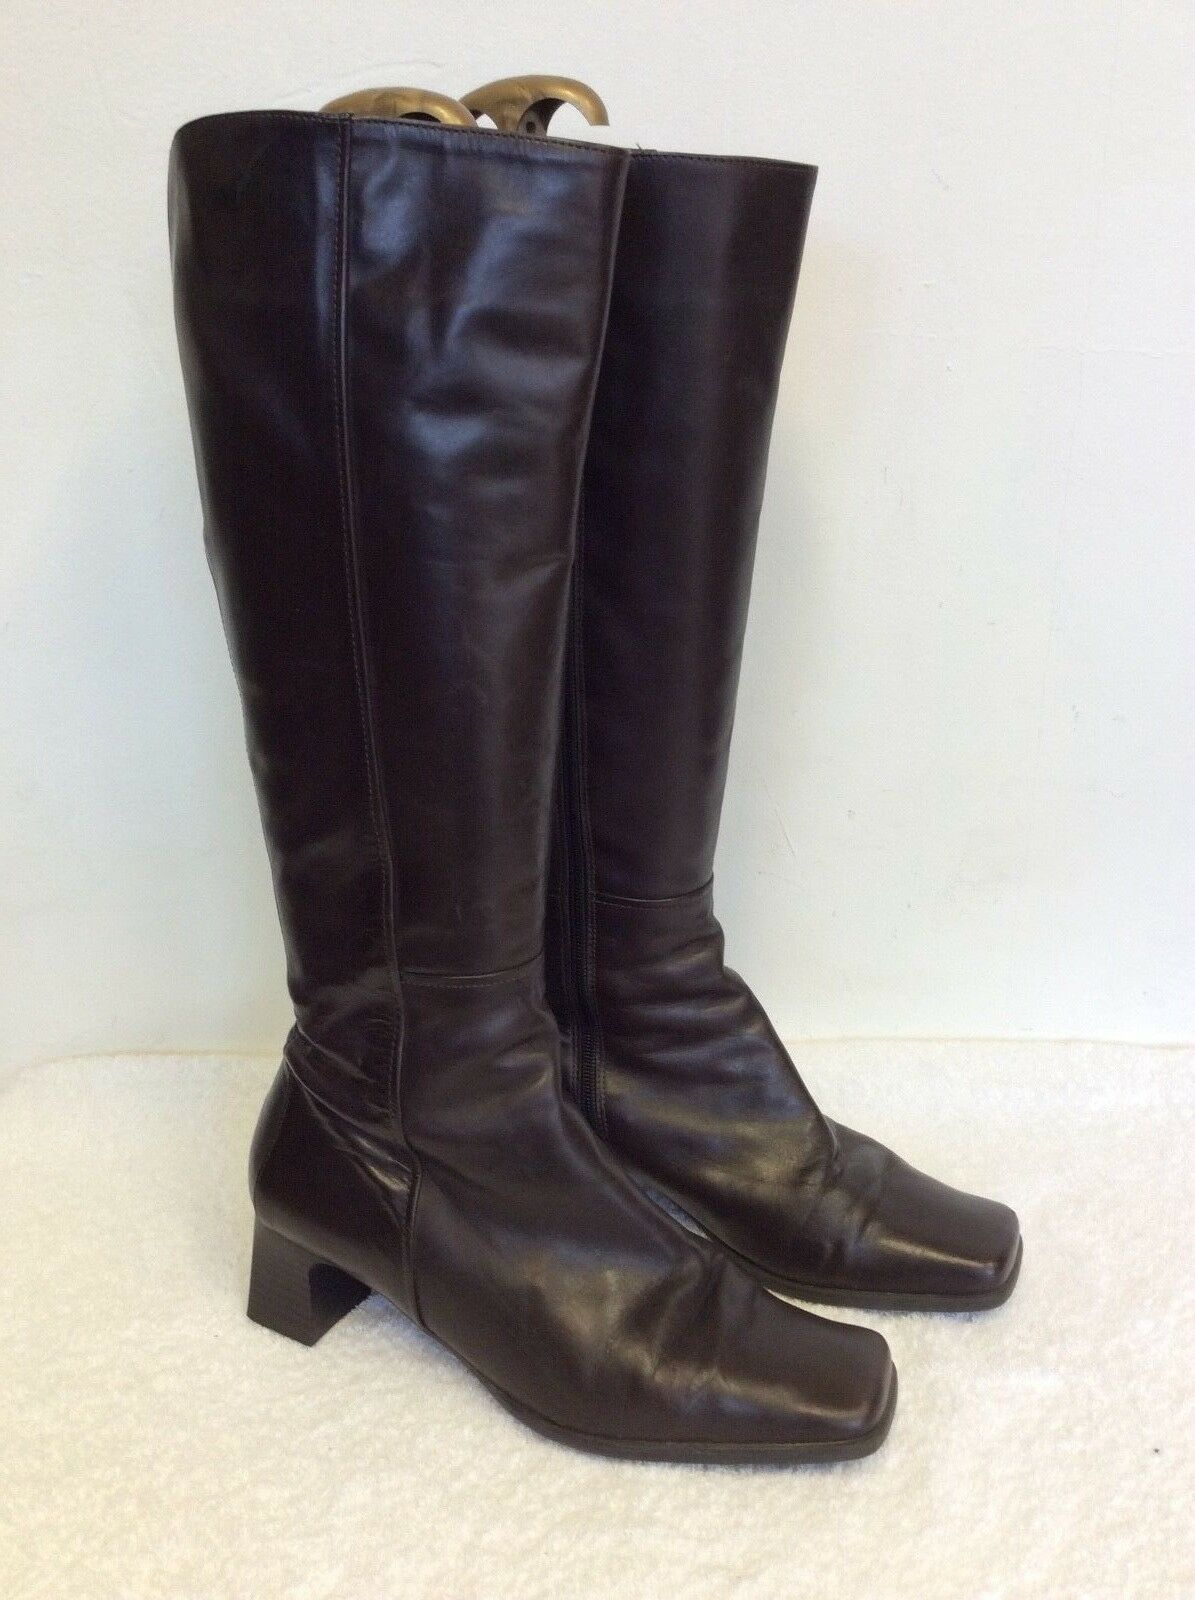 PAVACINI INTERNATIONAL DARK  BROWN LEATHER KNEE HIGH Stiefel 7/40 SIZE 7/40 Stiefel 7afed2